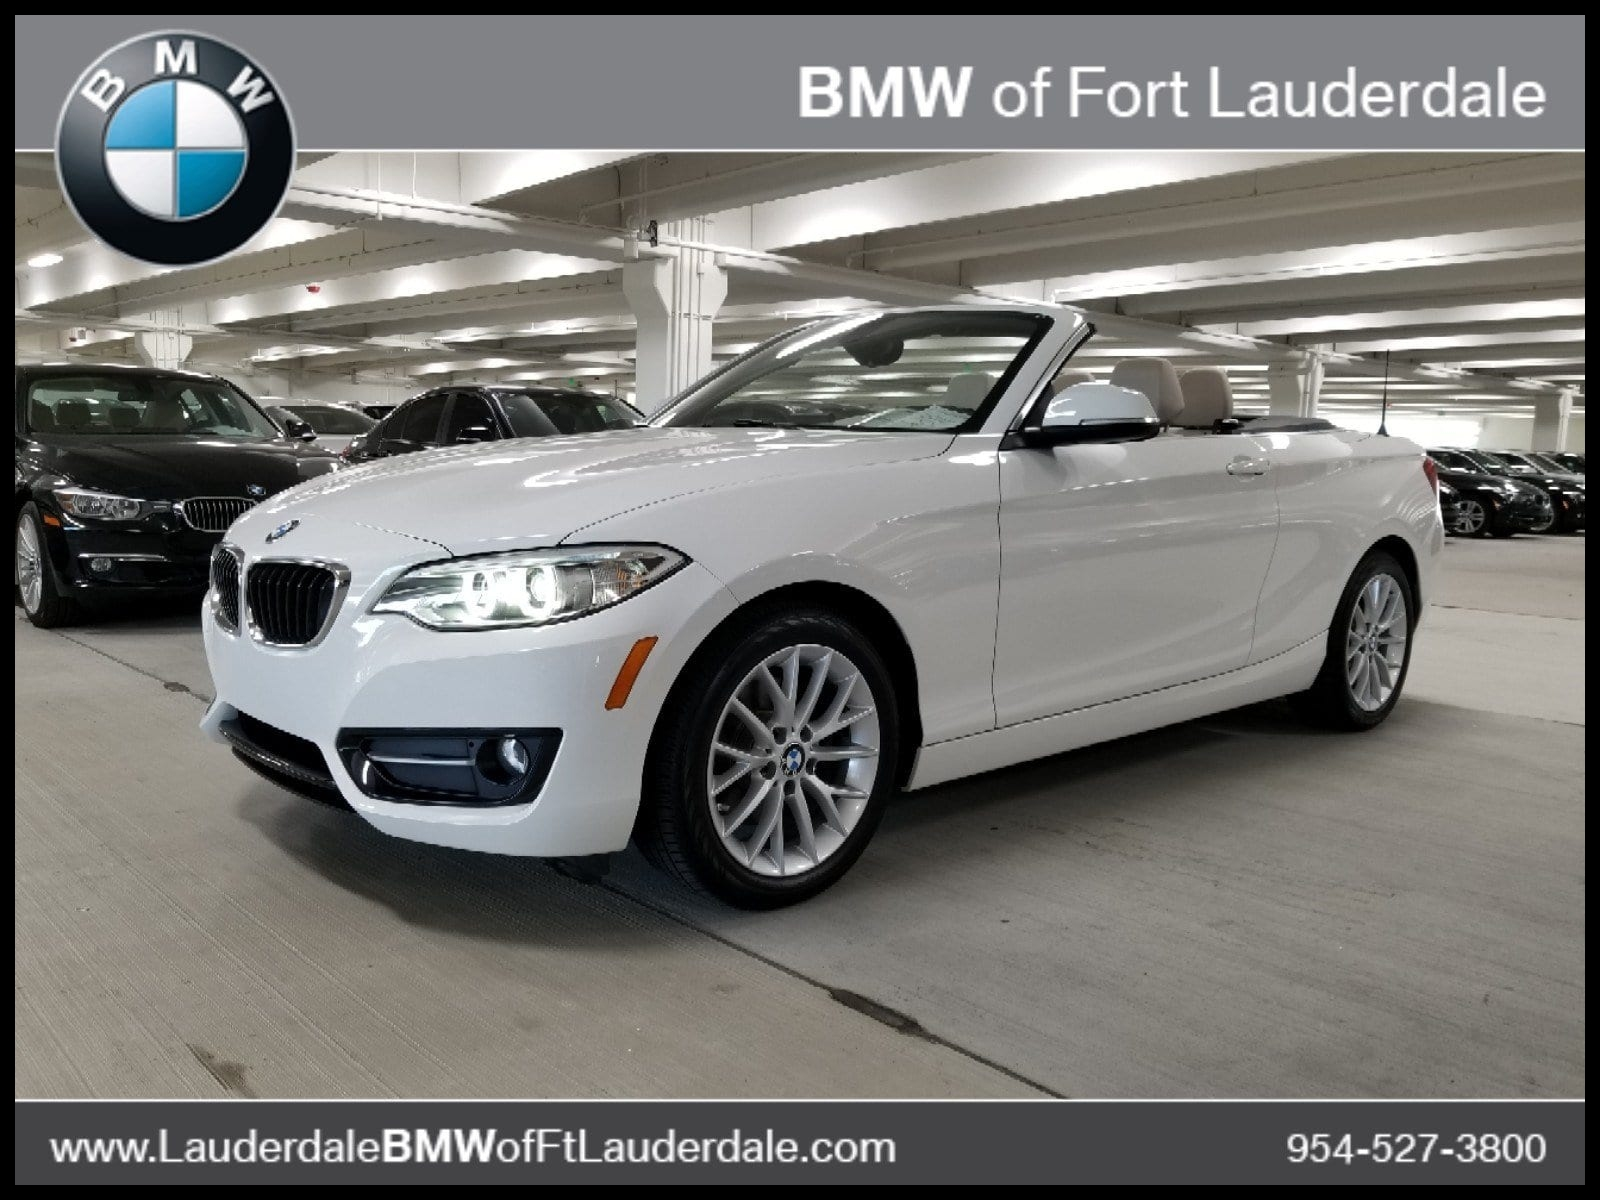 Certified Used 2016 BMW 228i For Sale in Fort Lauderdale FL Serving North Miami Beach